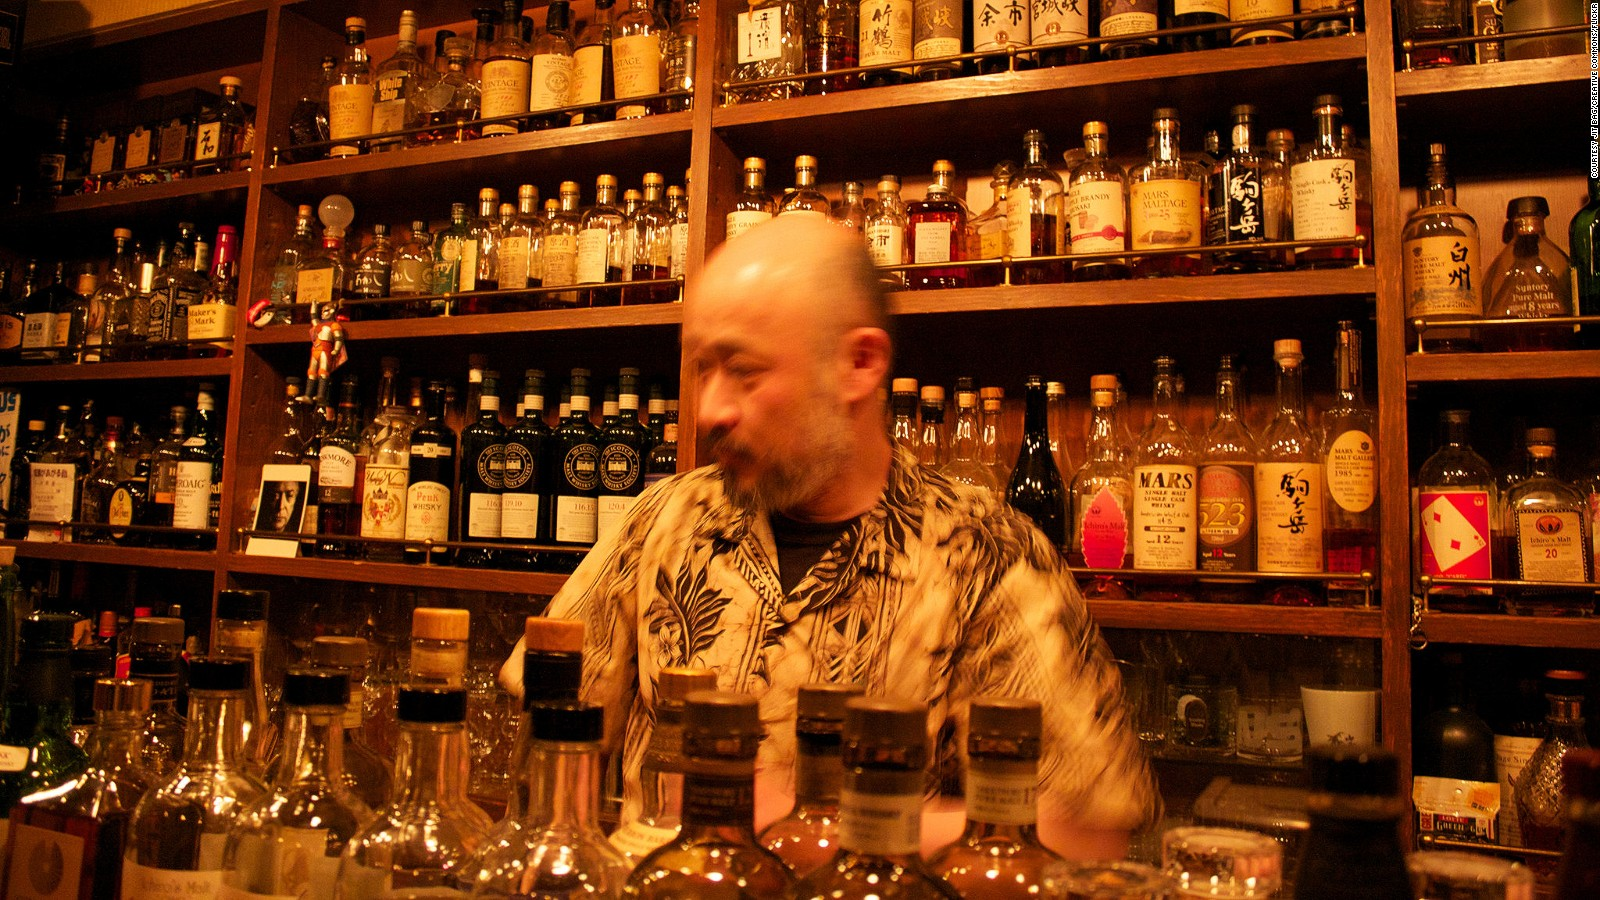 Bars in japan 6 rules on how to behave cnn travel ccuart Images